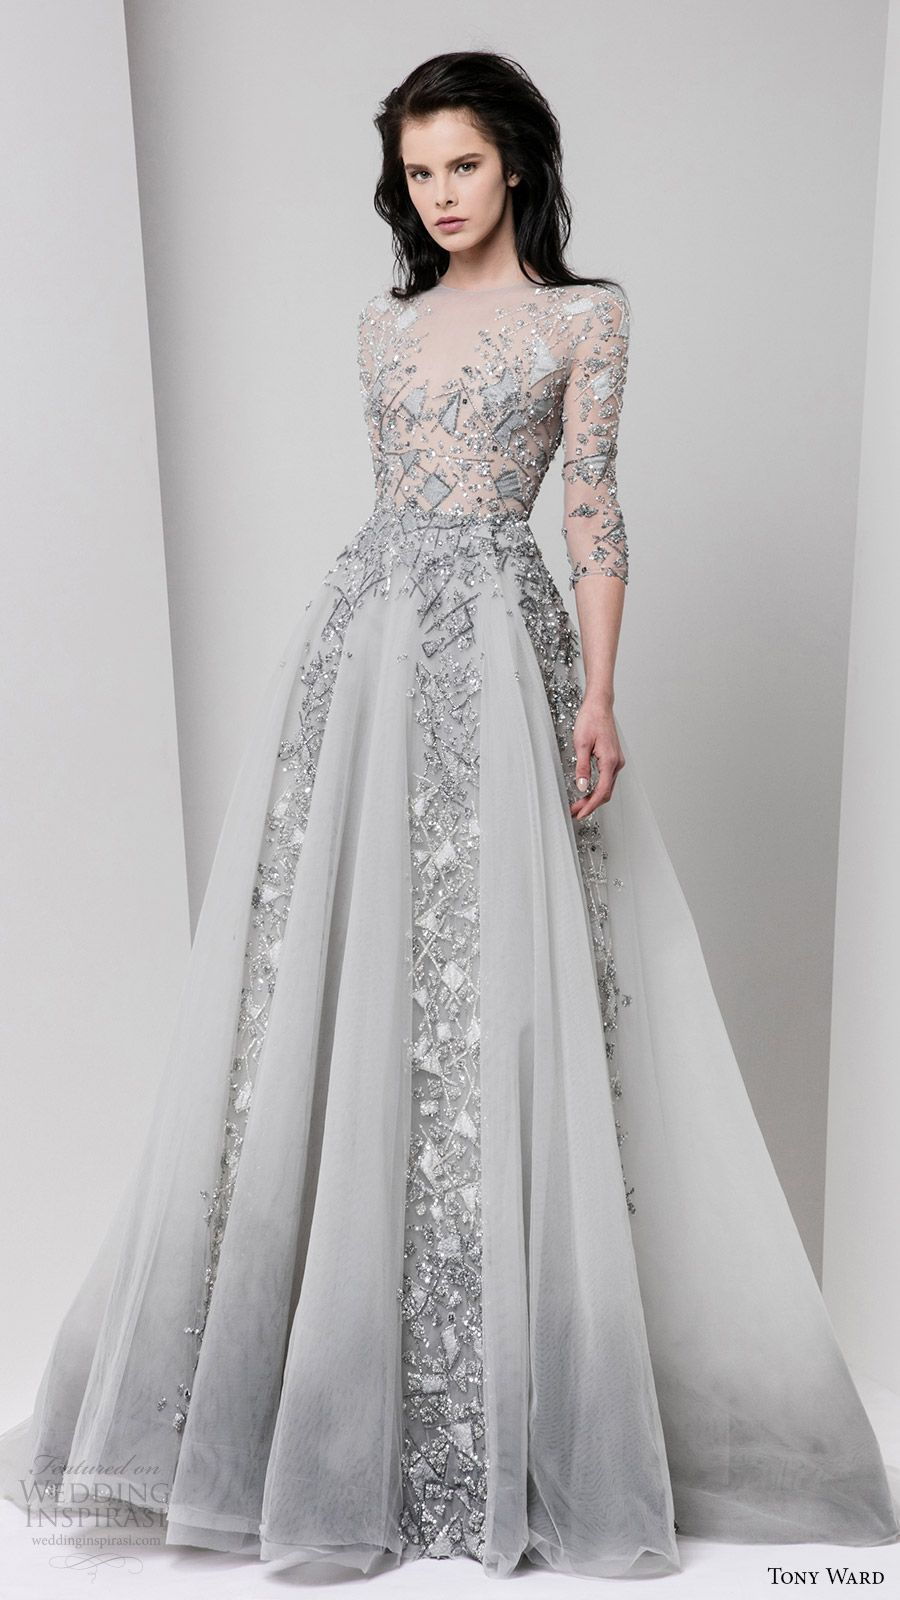 343618fb309  Stunning Tony ward fall 2016 rtw 3 quarter sleeves illusion bateau neck a  line evening dress grey gray embellished